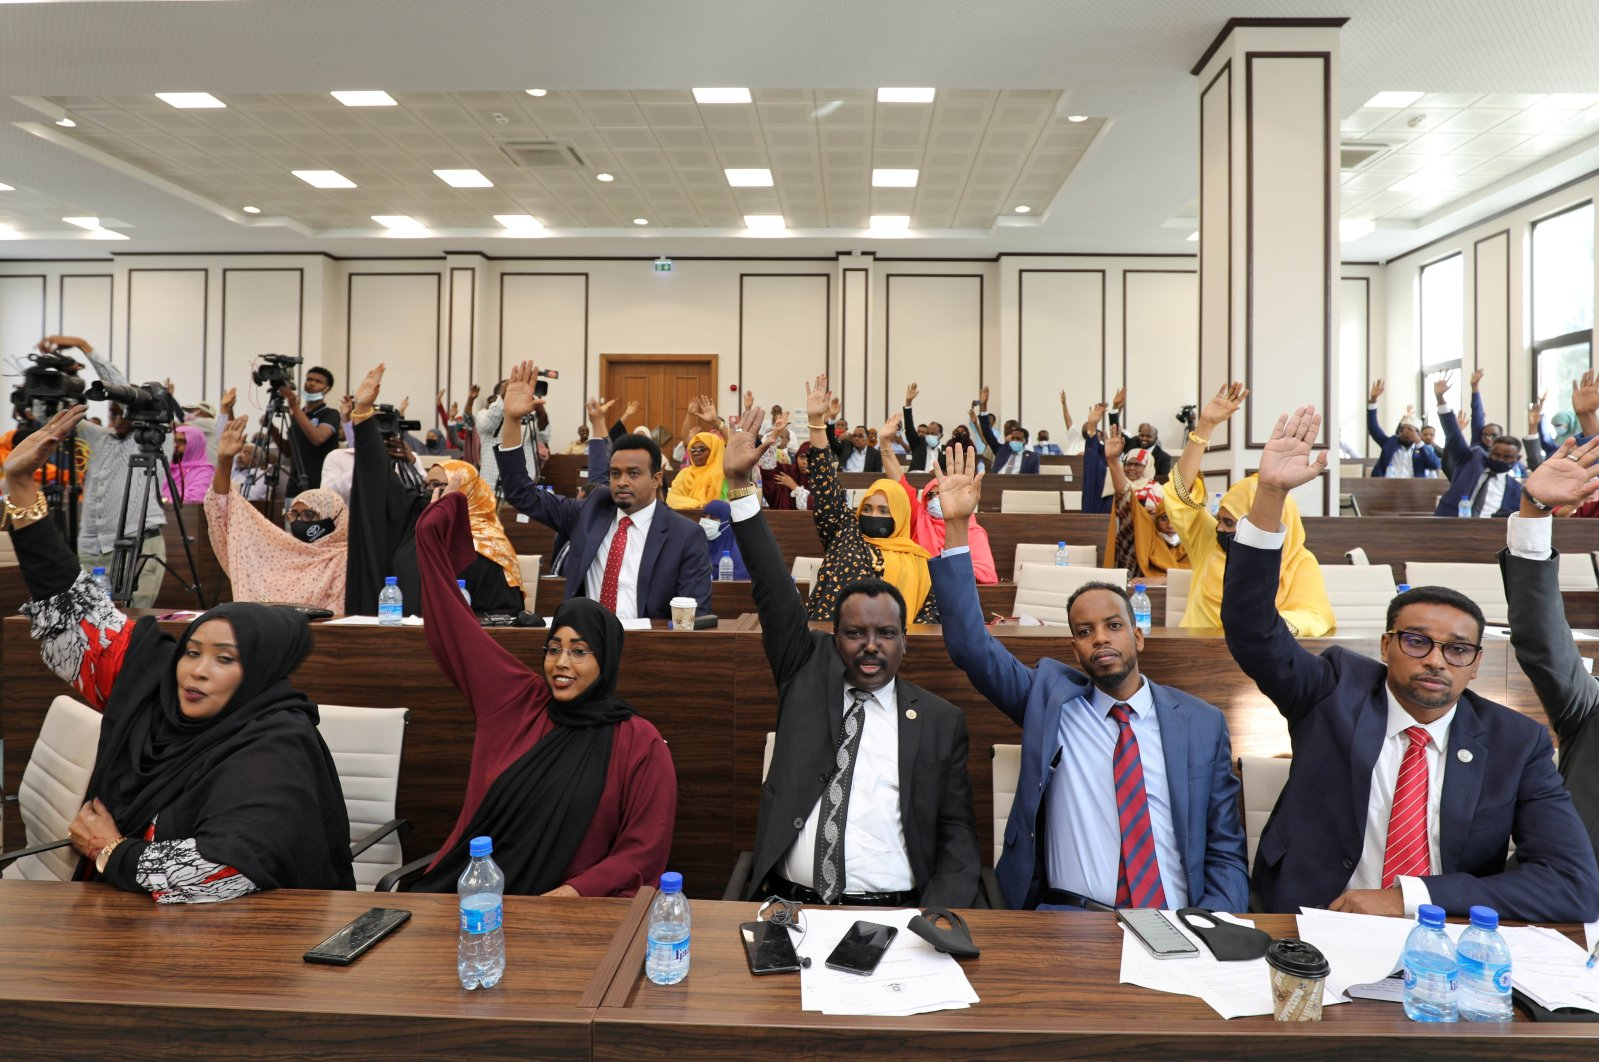 Somali legislators of the lower house of parliament raise their hands to vote to extend President Mohamed Abdullahi Mohamed's term for another two years to let the country prepare for direct elections, in Mogadishu, Somalia, April 12, 2021. (Reuters Photo)